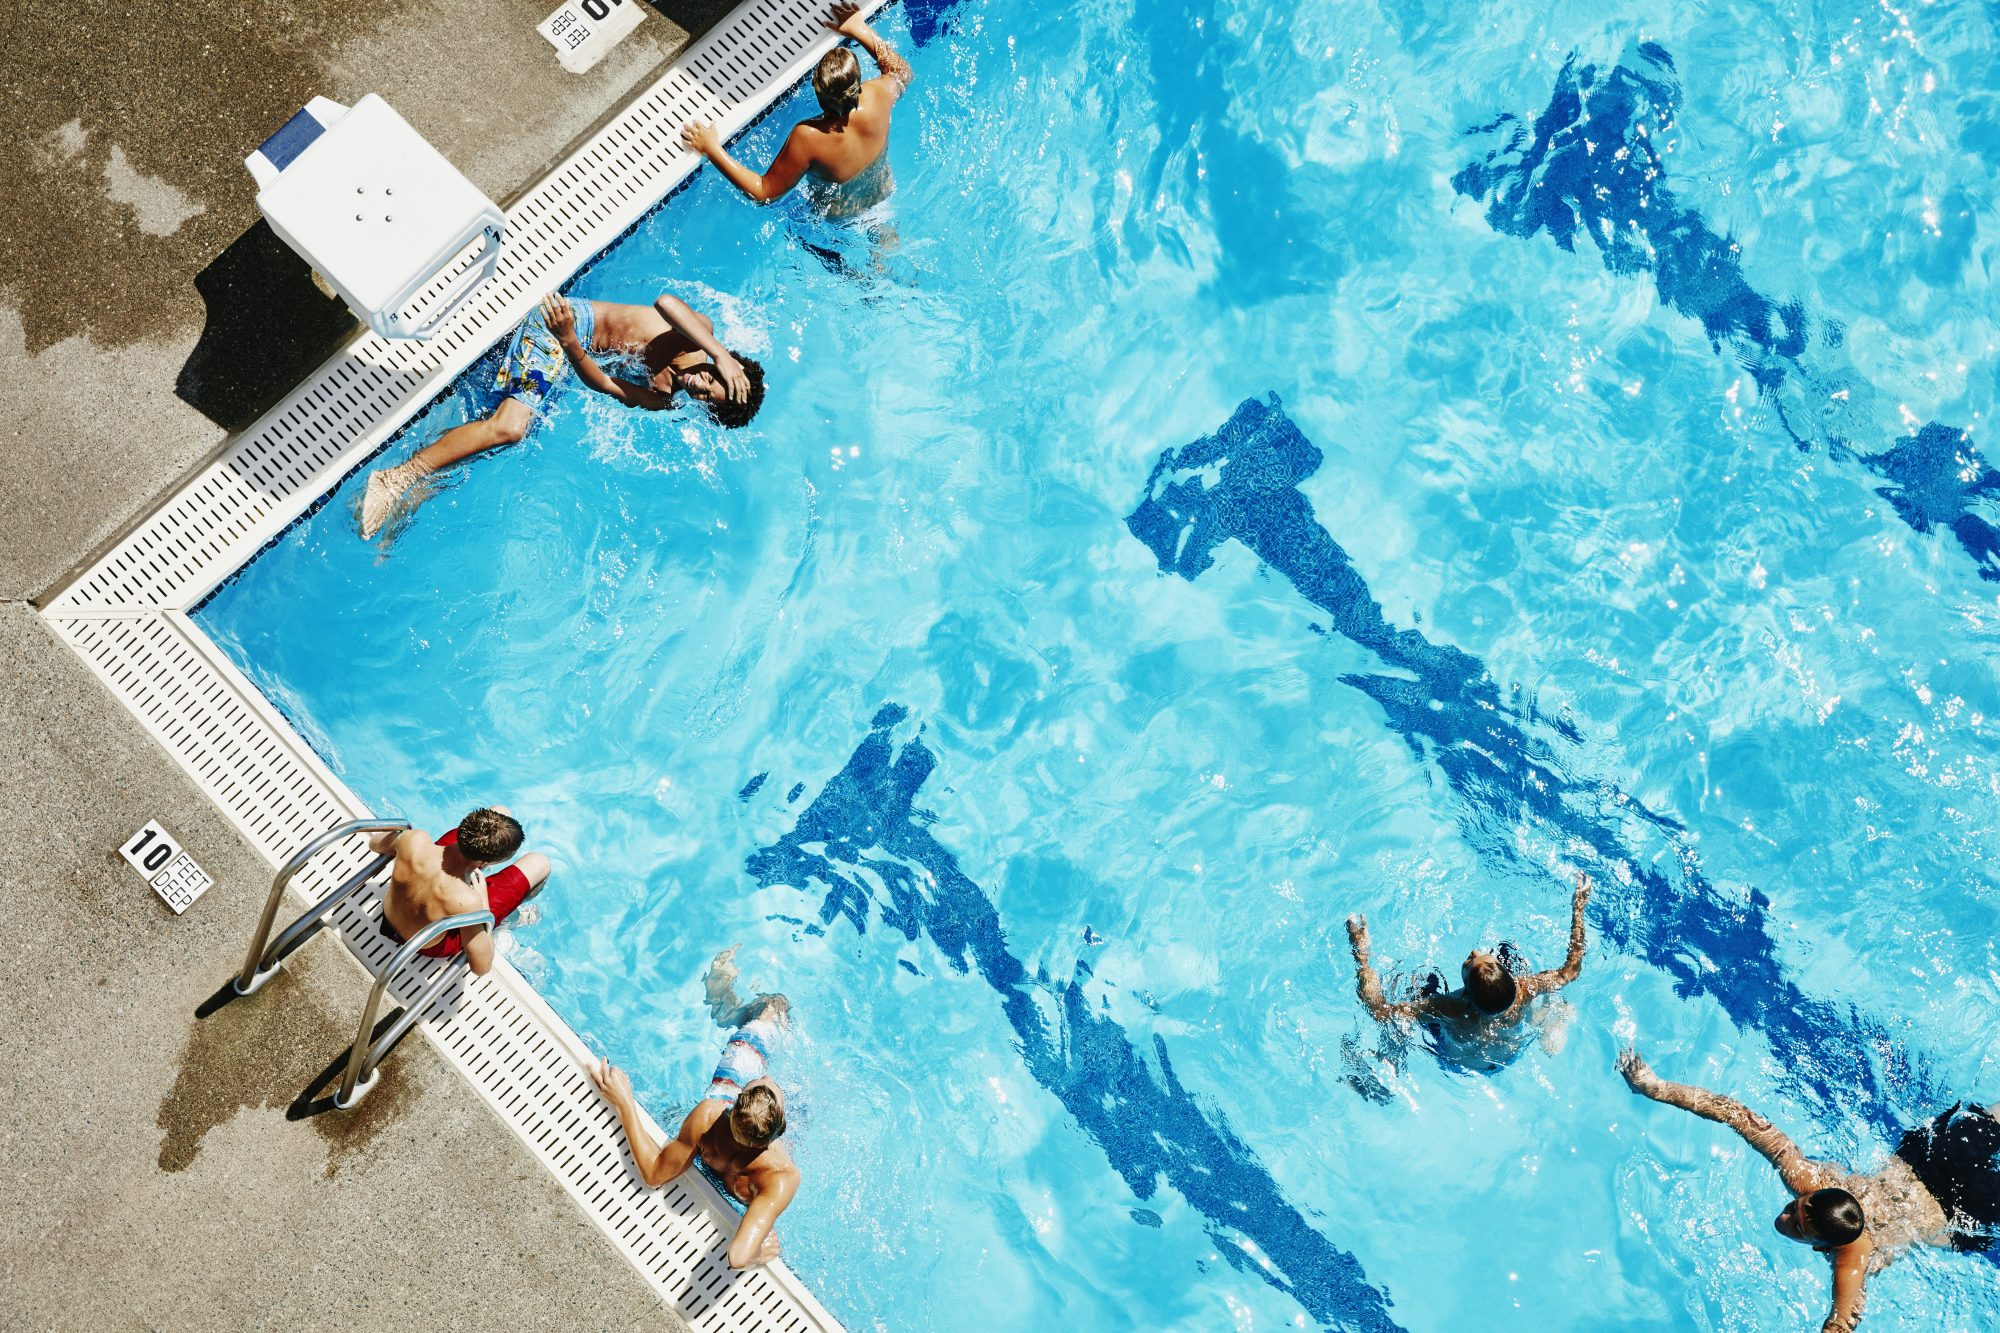 Scientists Say Gallons of Pee Are in the Average Pool. How Harmful Is It?